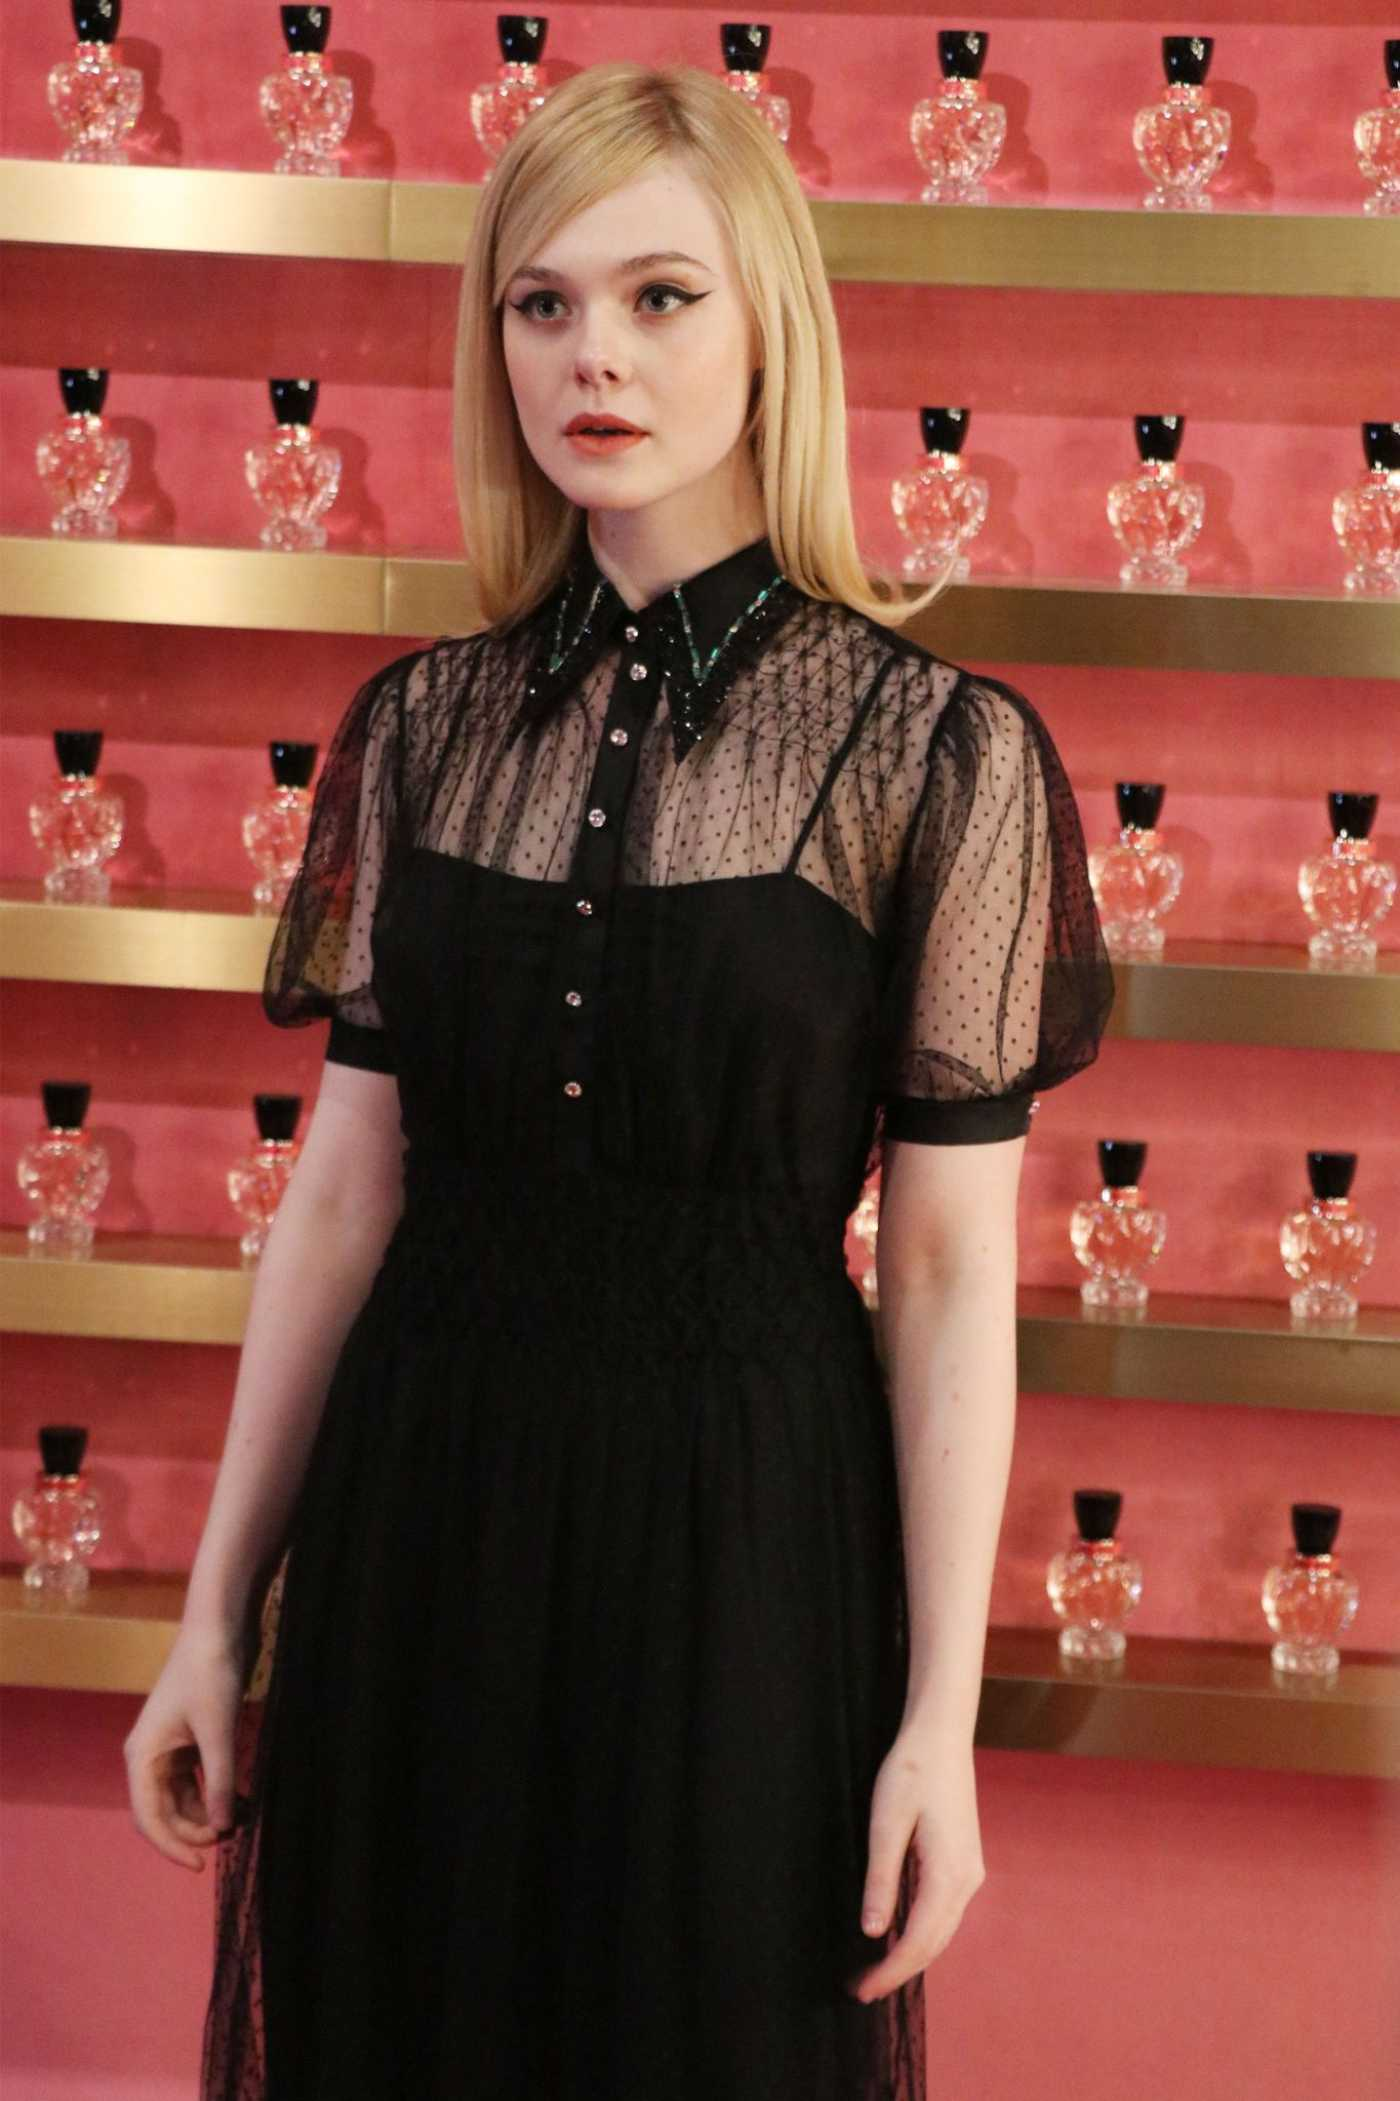 Elle Fanning Attends the Miu Miu Event in Shanghai 03/26/2019